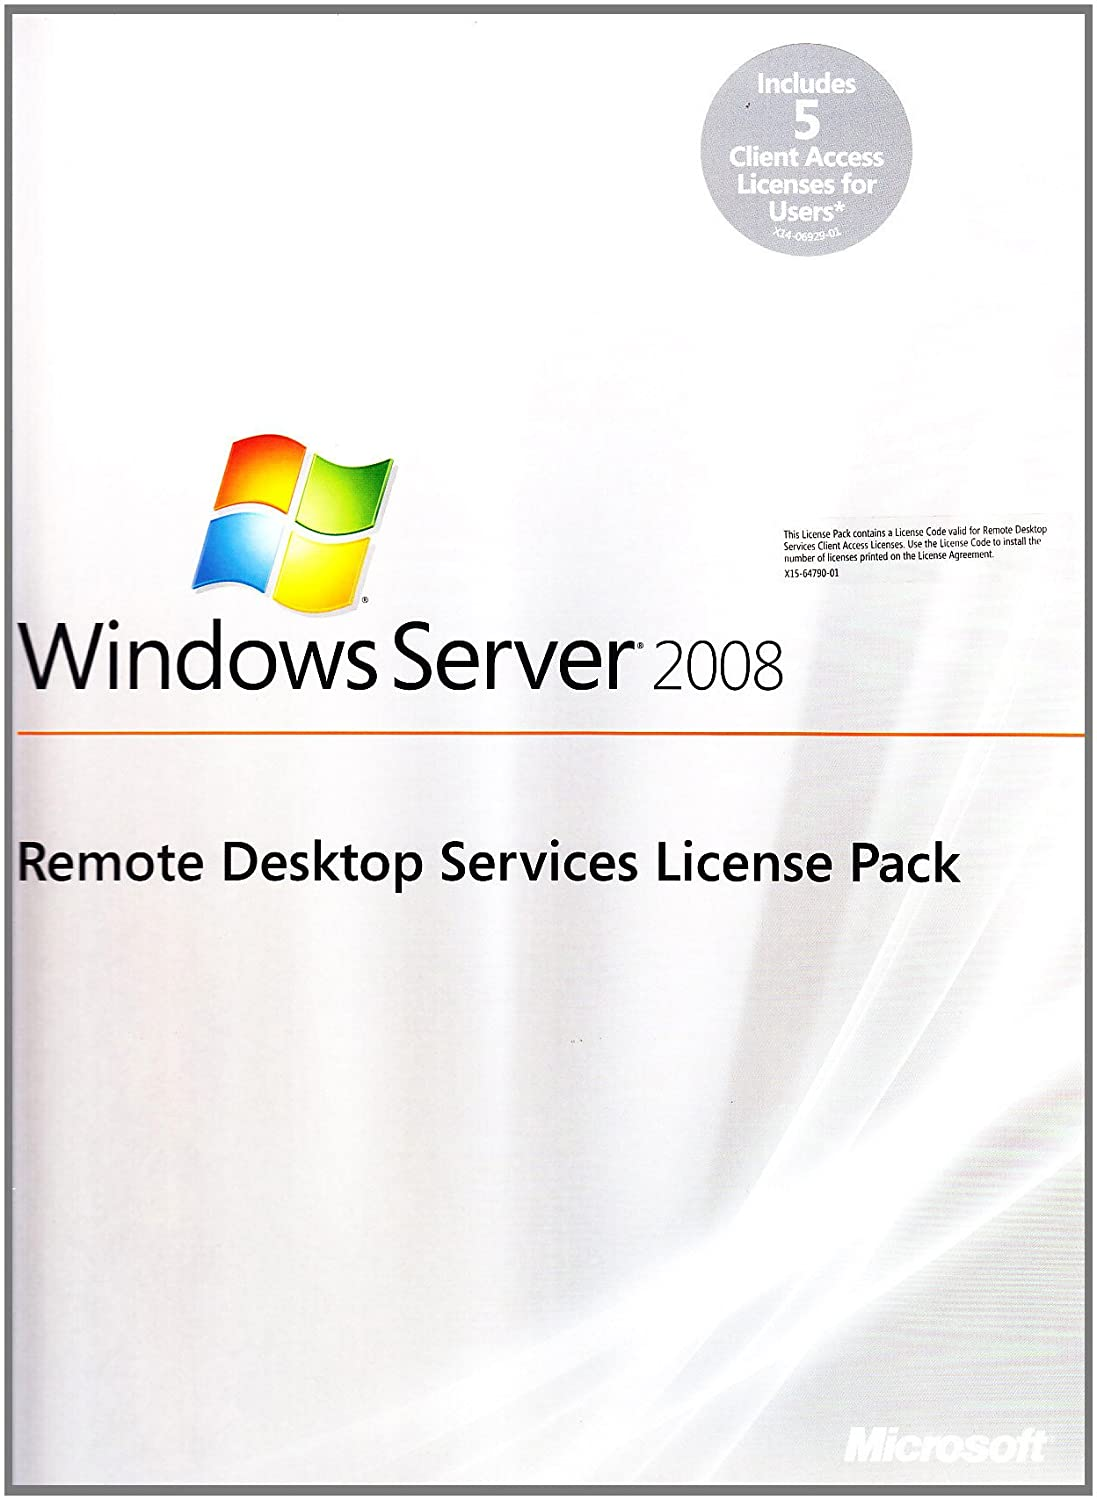 Professional Sale Windows Server 2012 Remote Desktop Client Access Licenses For 5 Users Reputation First rds Cals